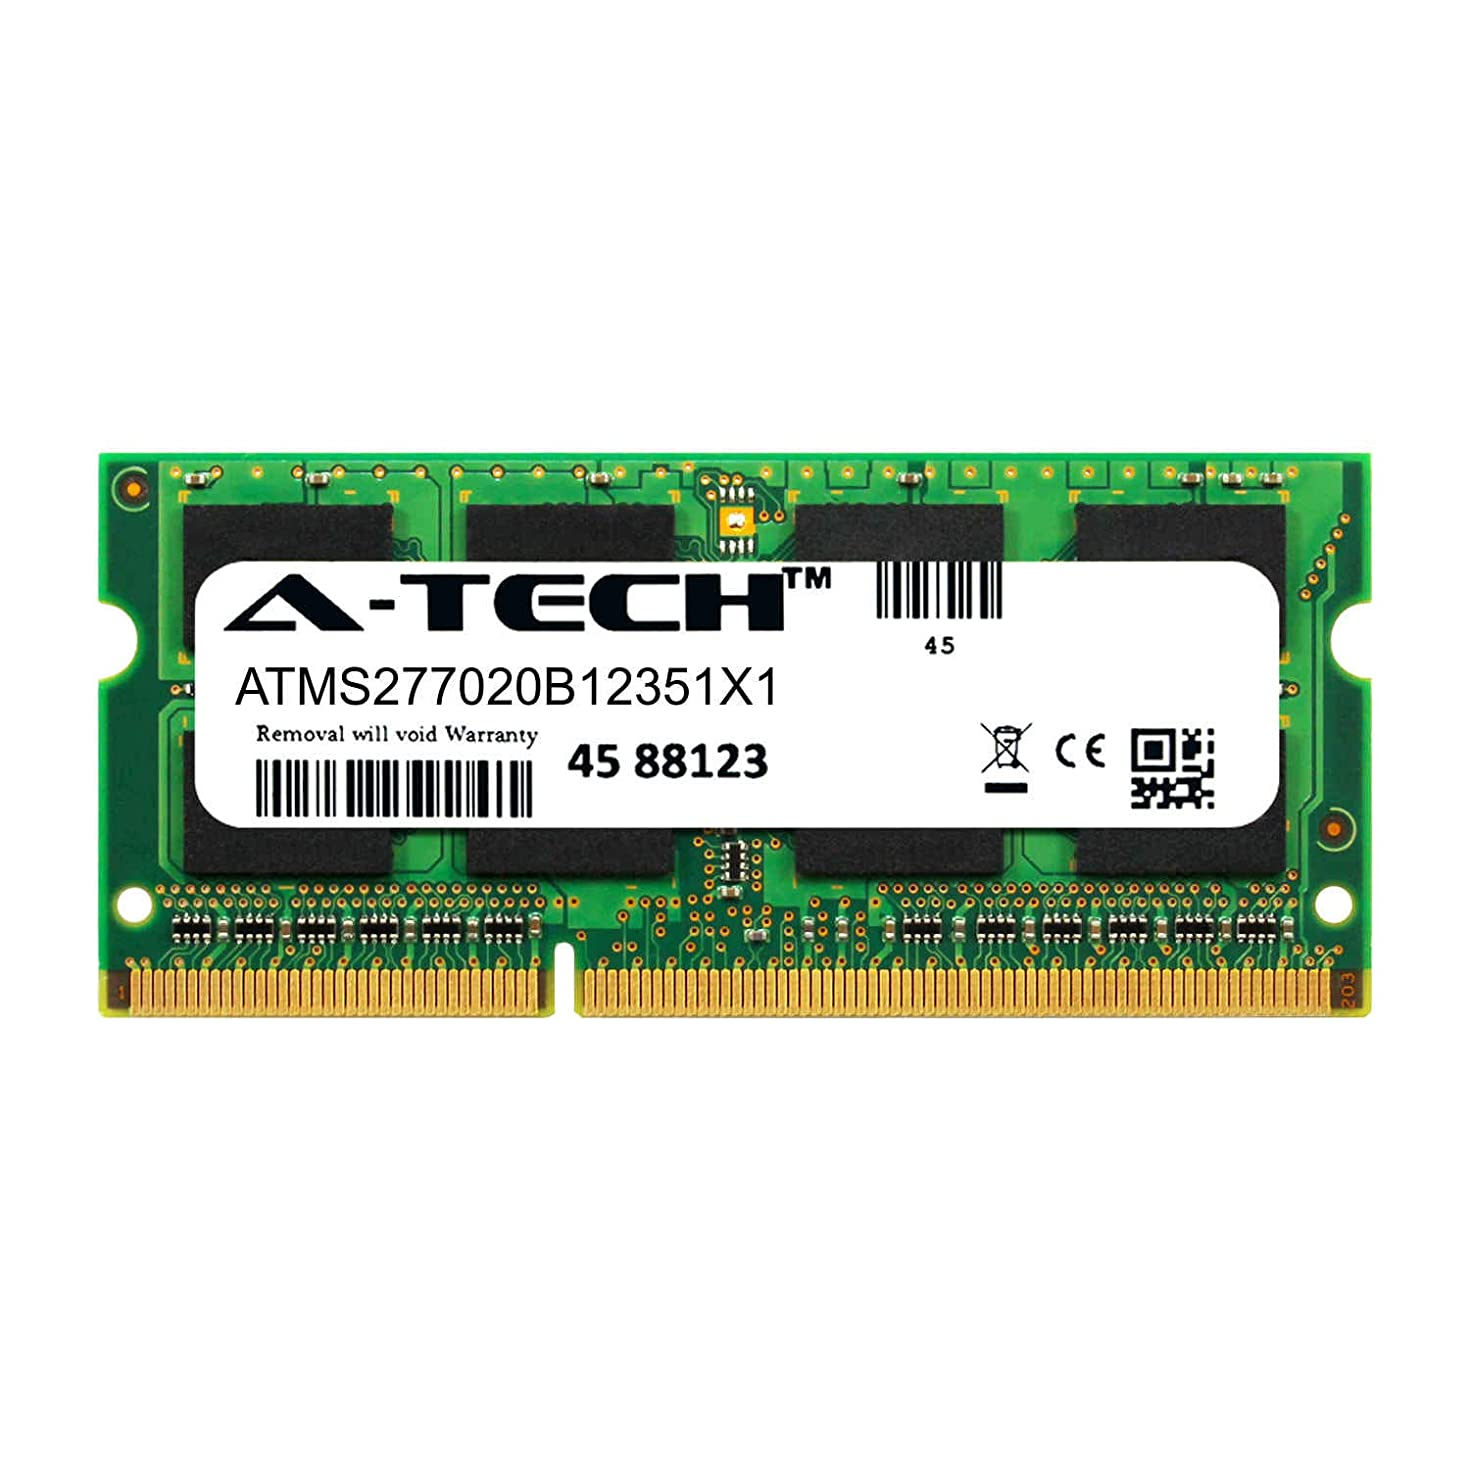 A-Tech 8GB Module for Lenovo IdeaPad Yoga 11s Laptop & Notebook Compatible DDR3/DDR3L PC3-12800 1600Mhz Memory Ram (ATMS277020B12351X1)